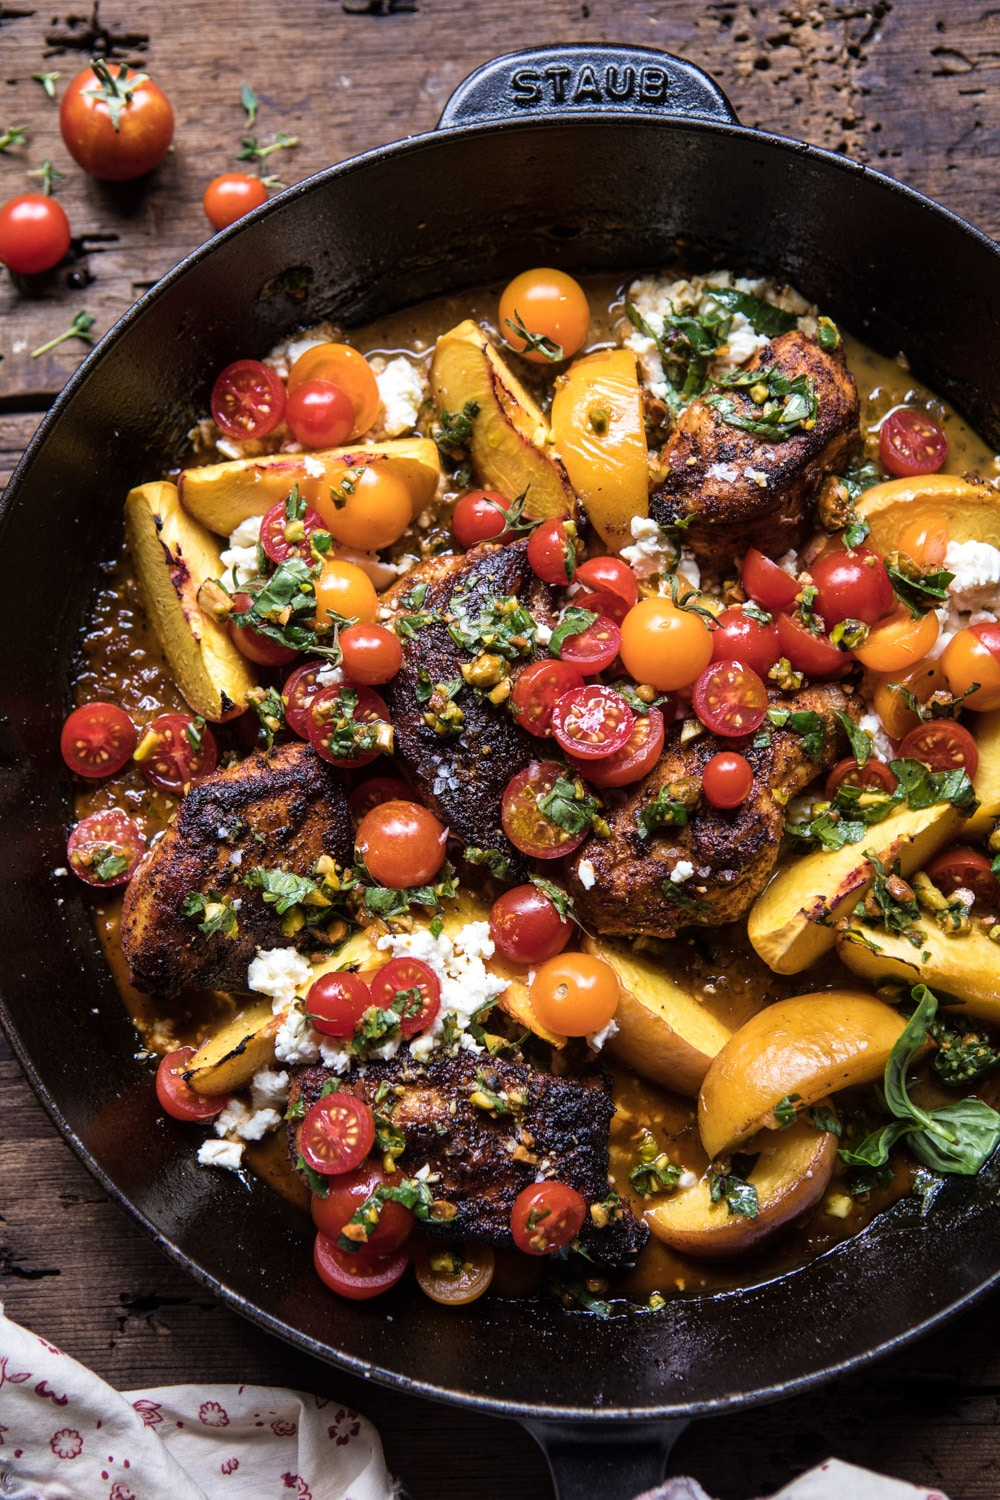 Skillet-Moroccan-Chicken-with-Tomatoes-Peaches-and-Feta-1.jpg